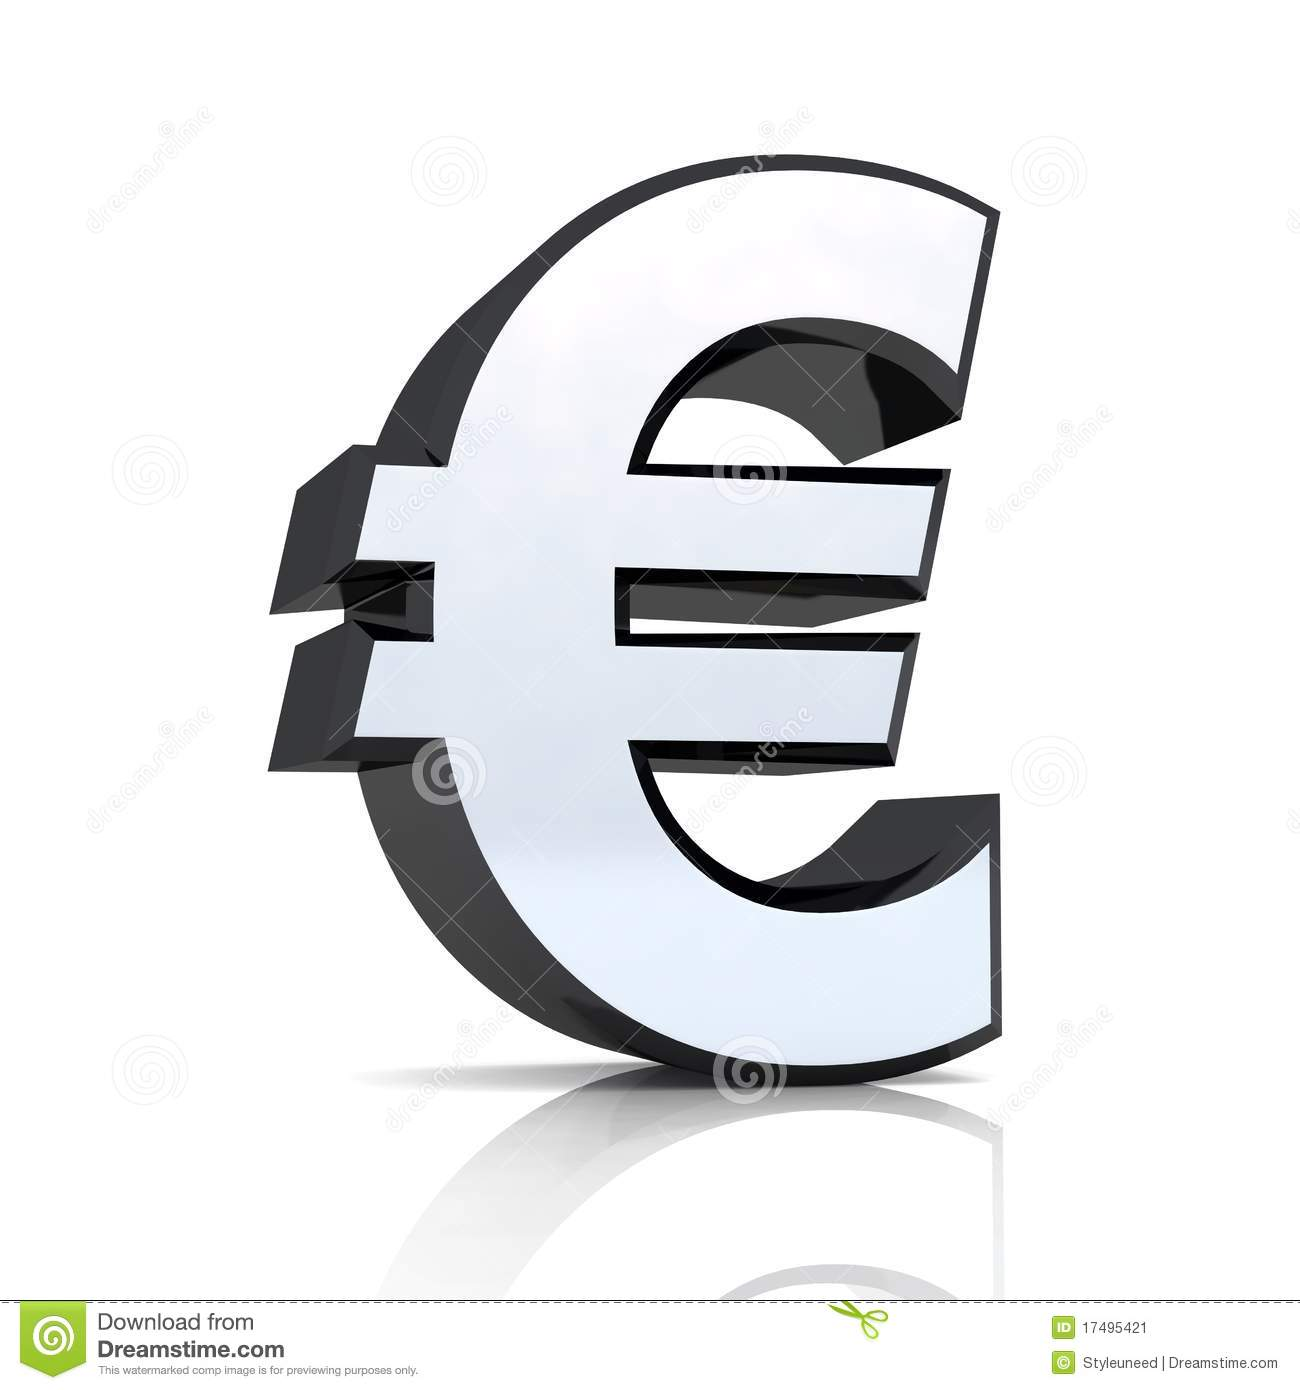 Euro symbol before or after number choice image symbol and sign 3d euro symbol silver black stock illustration illustration of 3d euro symbol silver black buycottarizona biocorpaavc